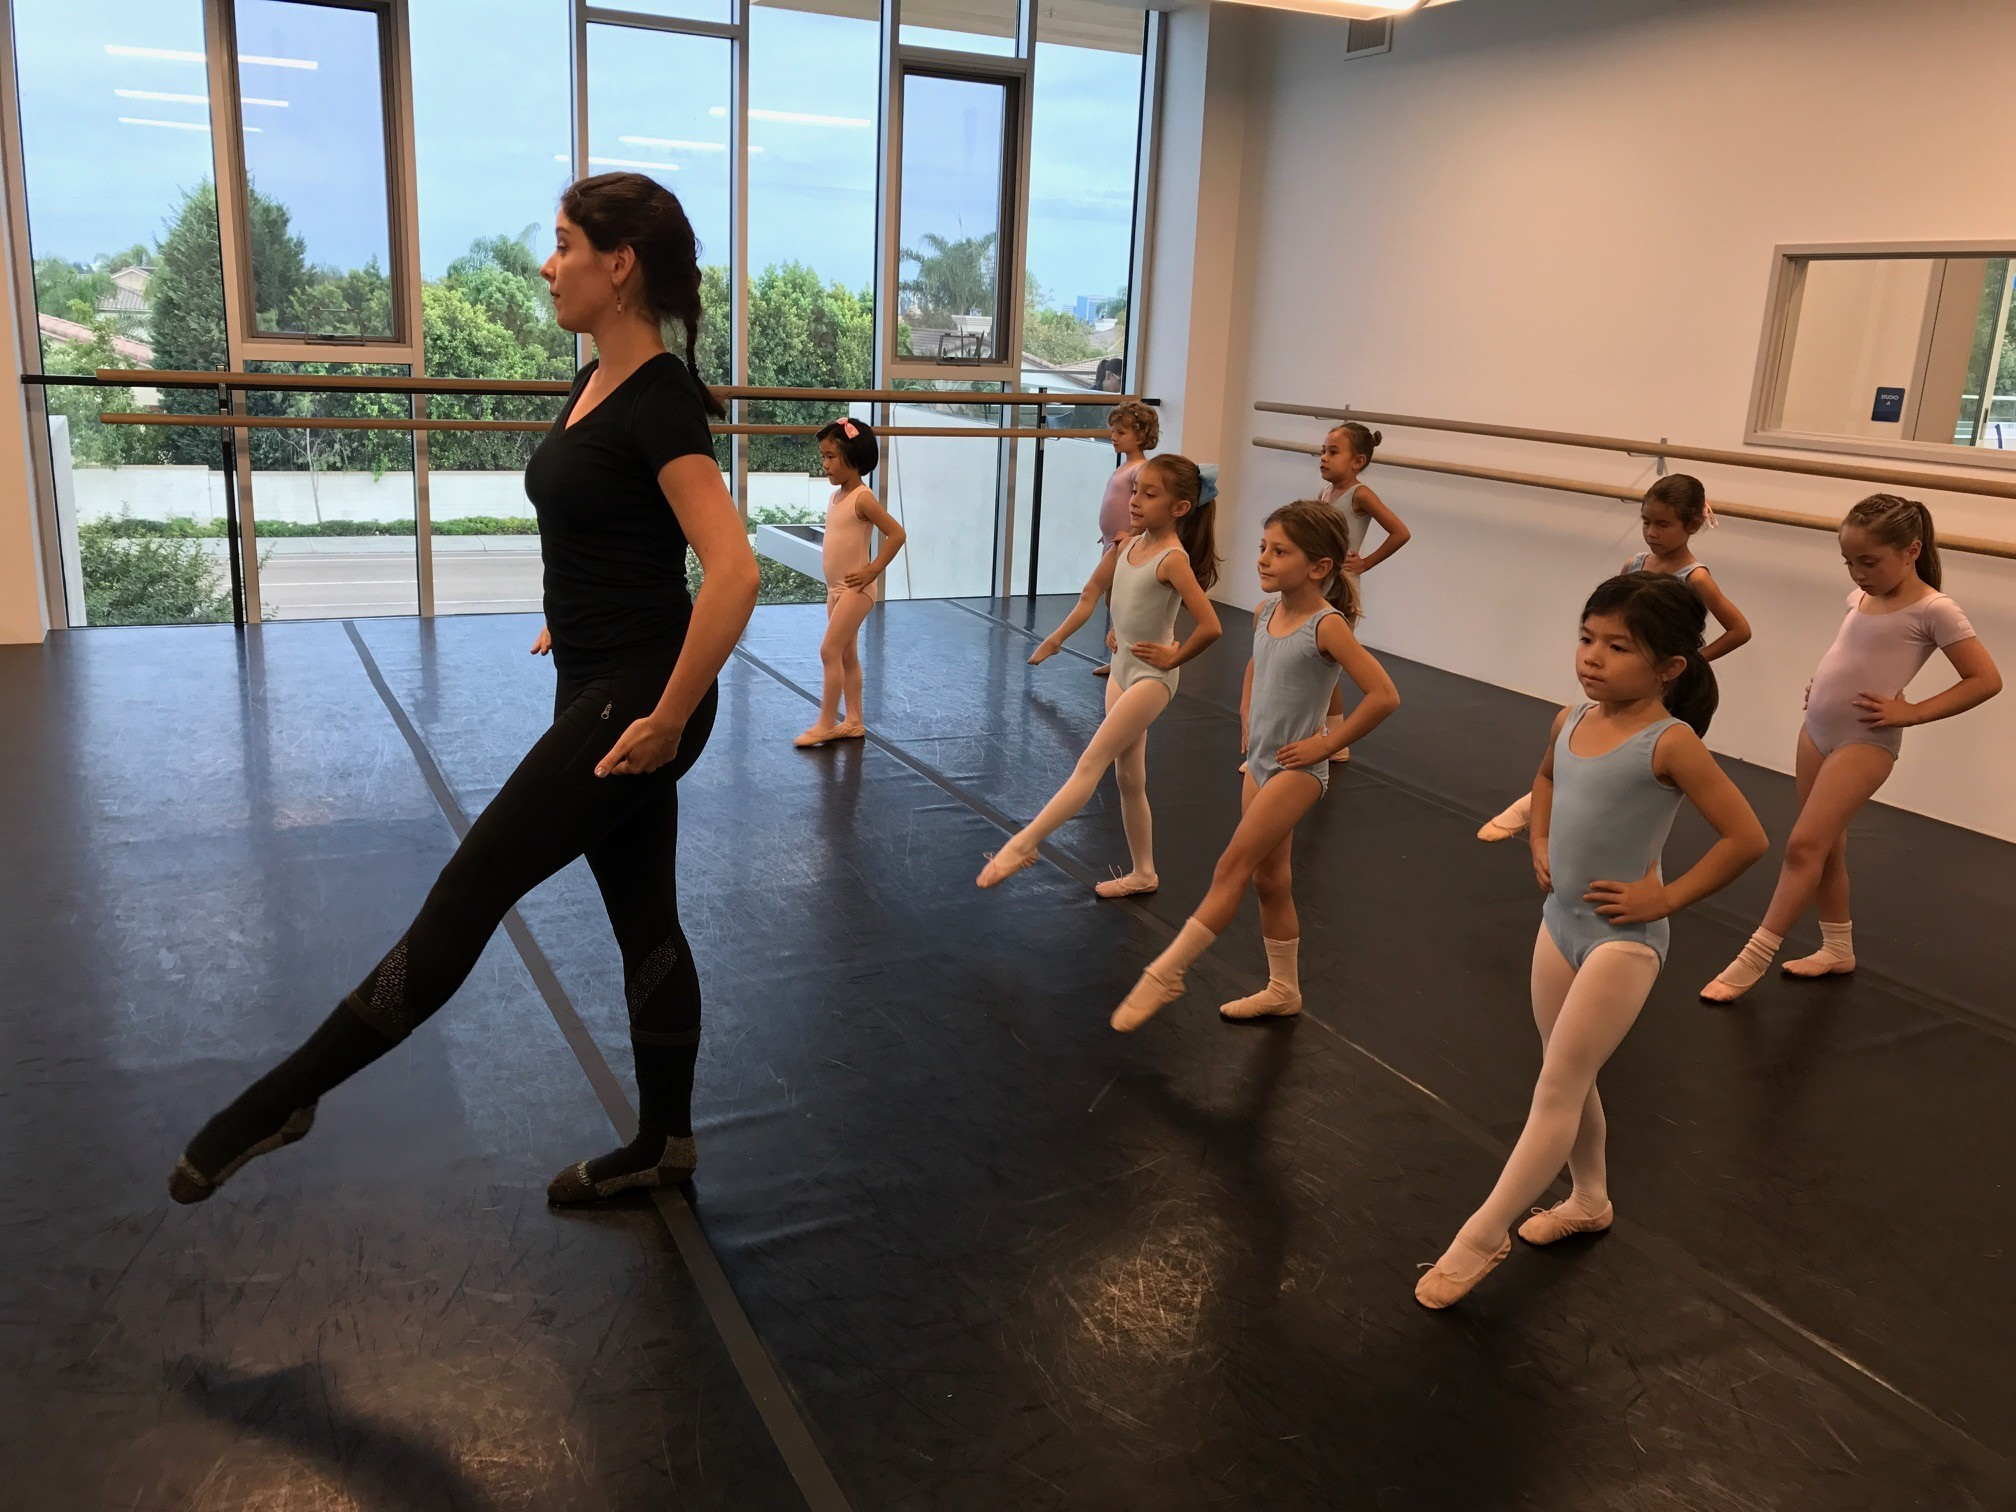 Amanda Daly teaches a ballet class at Pacific Arts Dance Center.